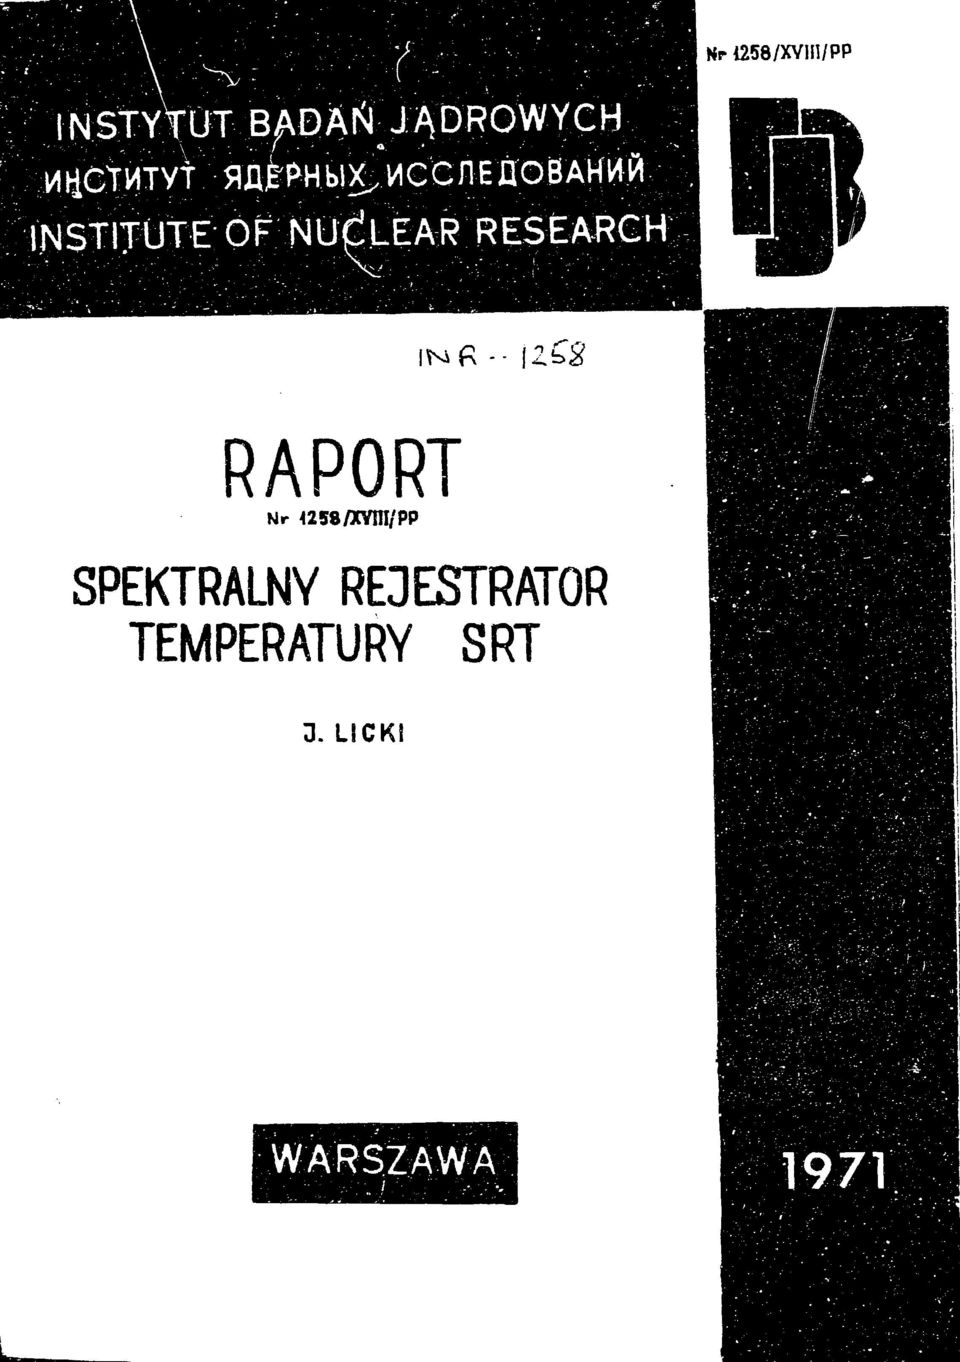 LEAR RESEARCH; RAPORT Nr <258/ХШ/РР SPEKTRALNY